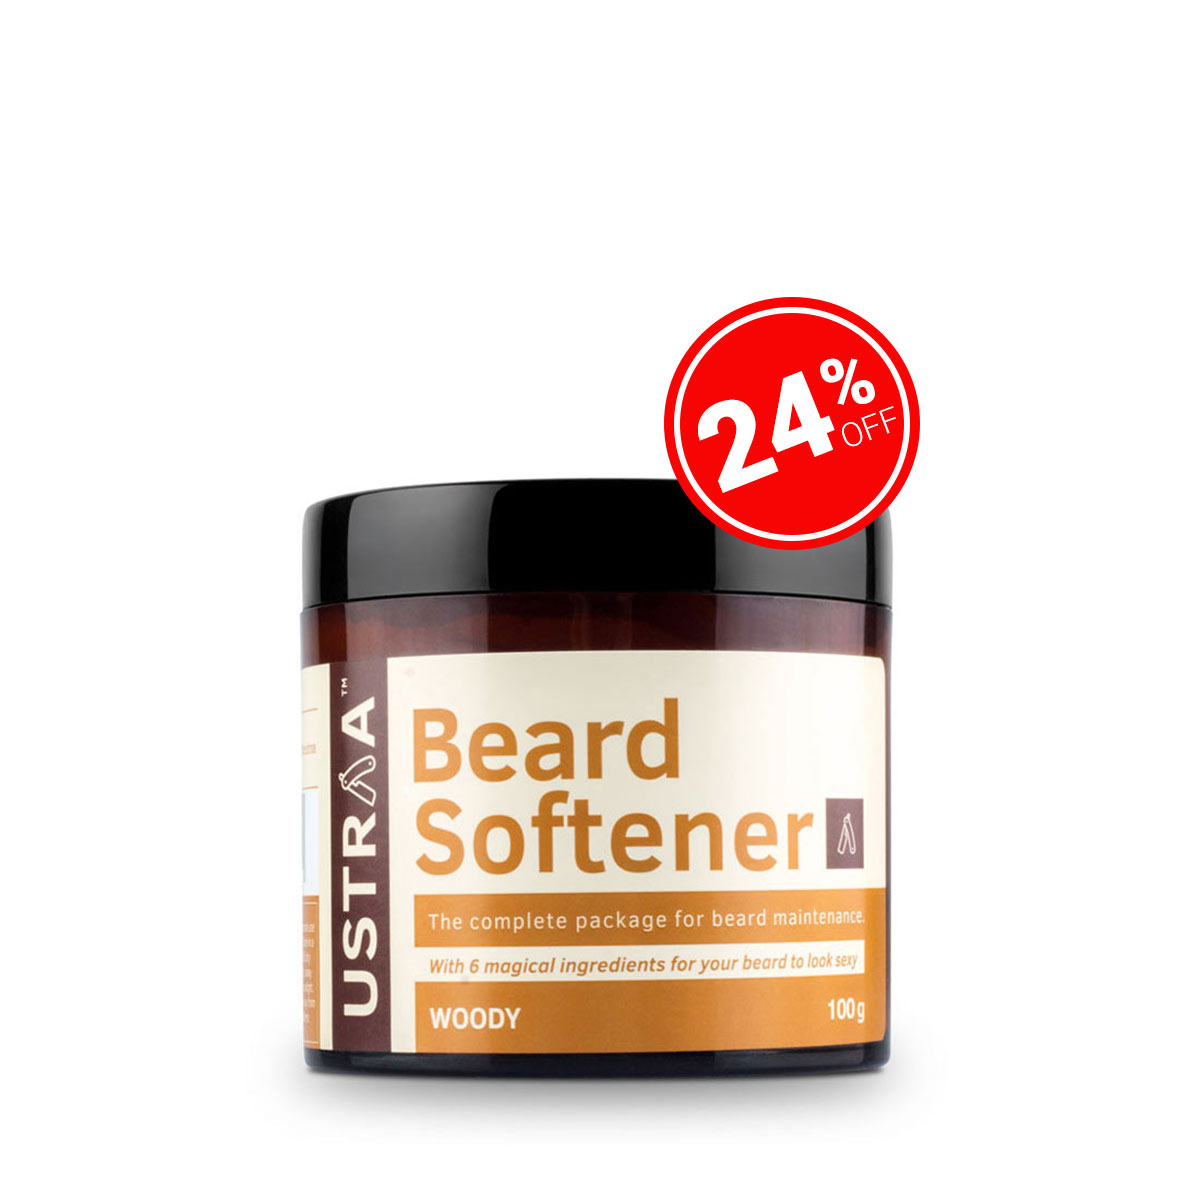 Beard Softener Woody - 100g